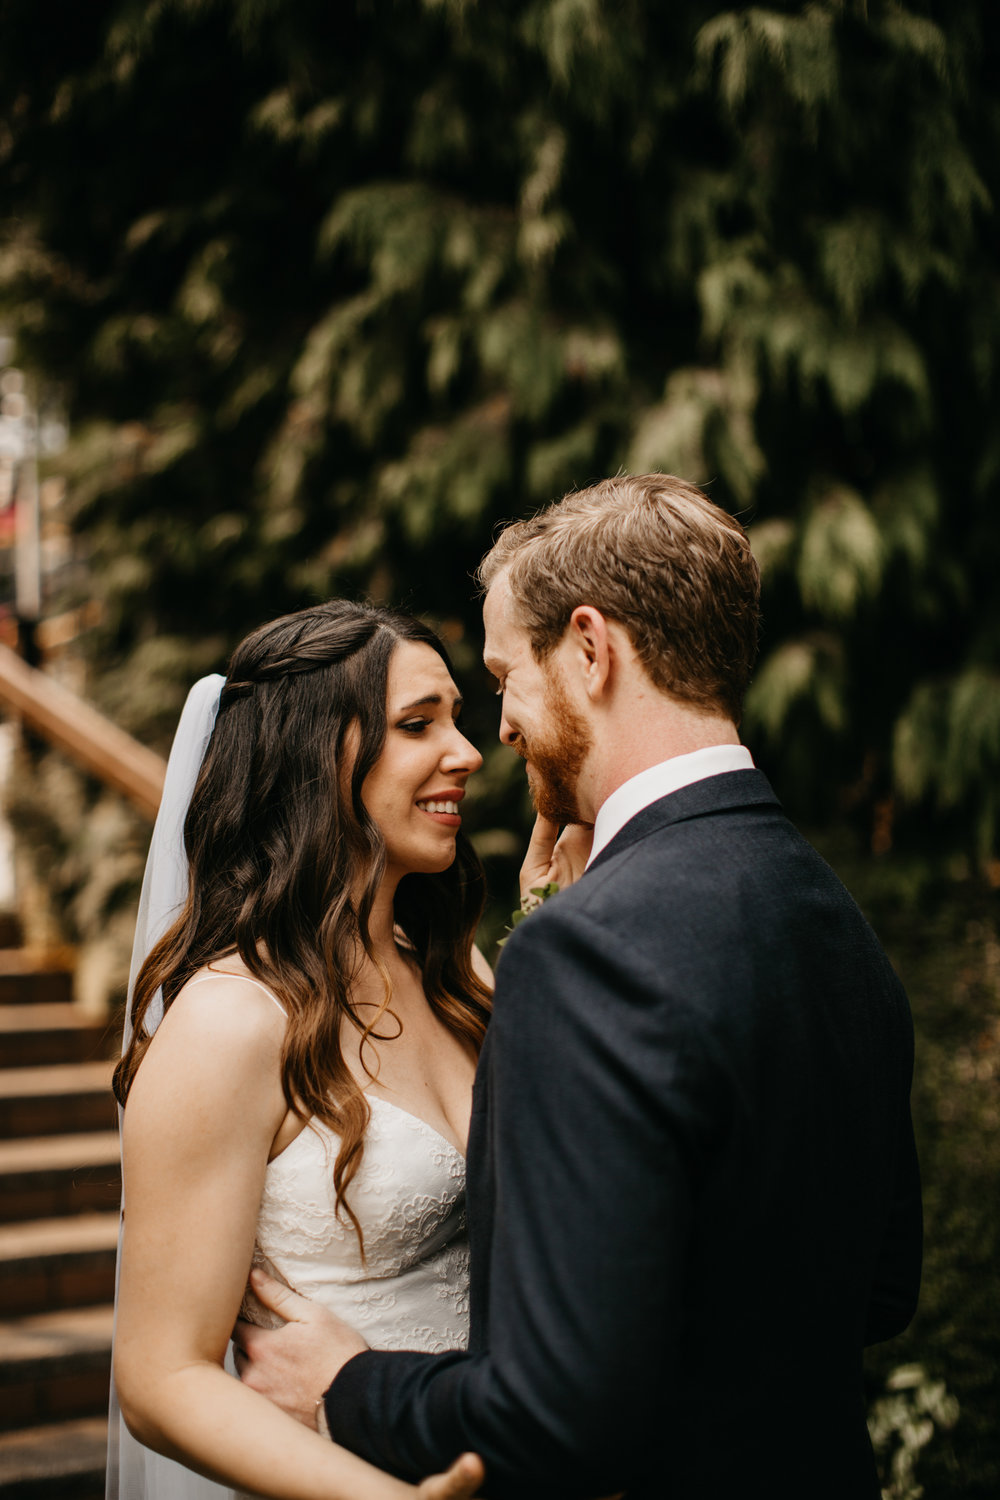 Max&SamPhoto_Seattle Wedding Photographer_Bellevue Robinswood House_033.jpg